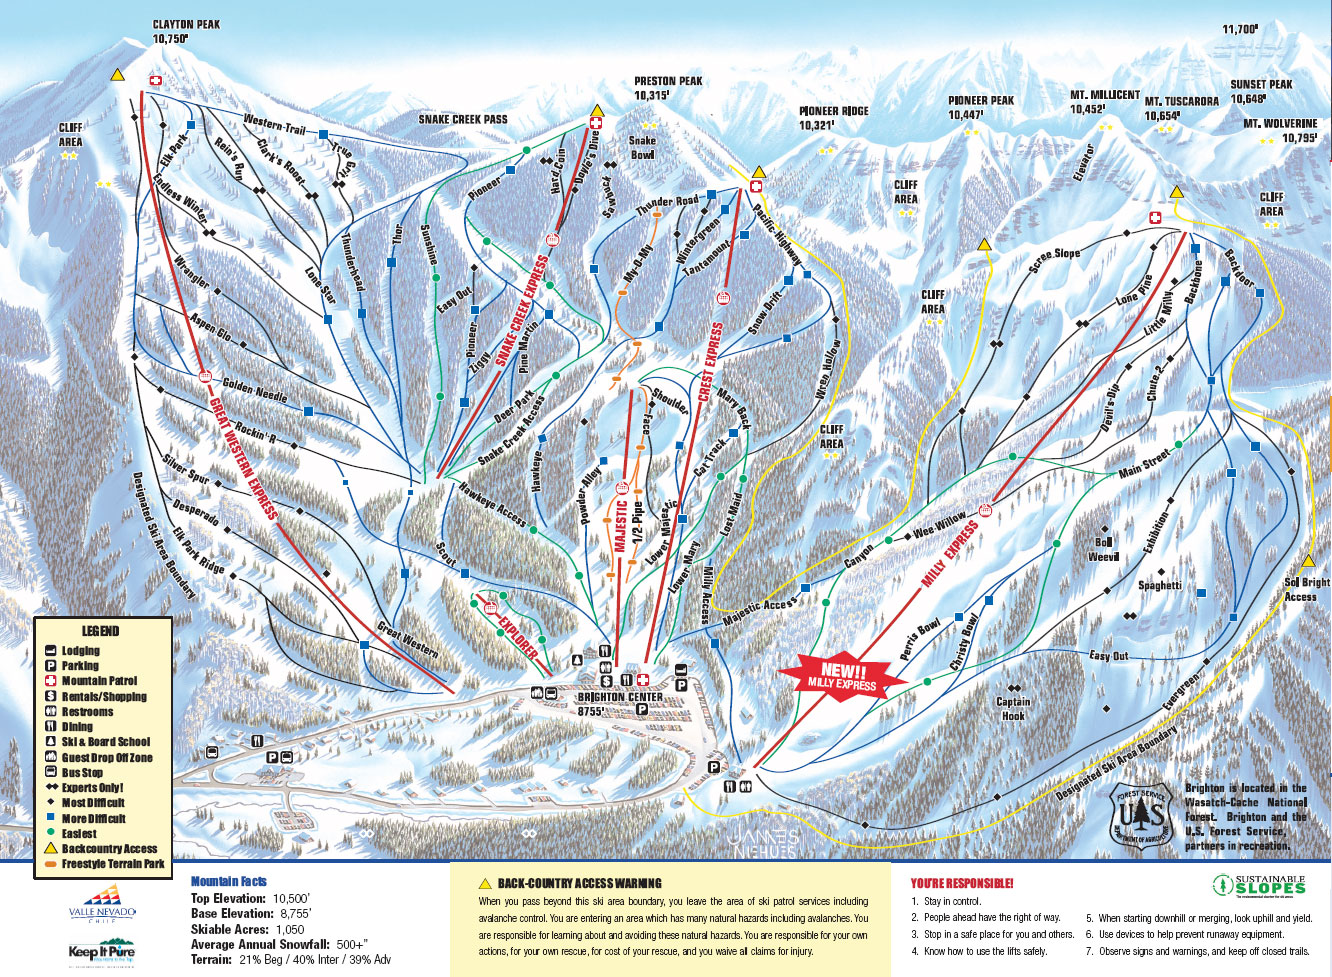 Brighton Ski Area Trail Map 12601 E Big Cottonwood Canyon Road